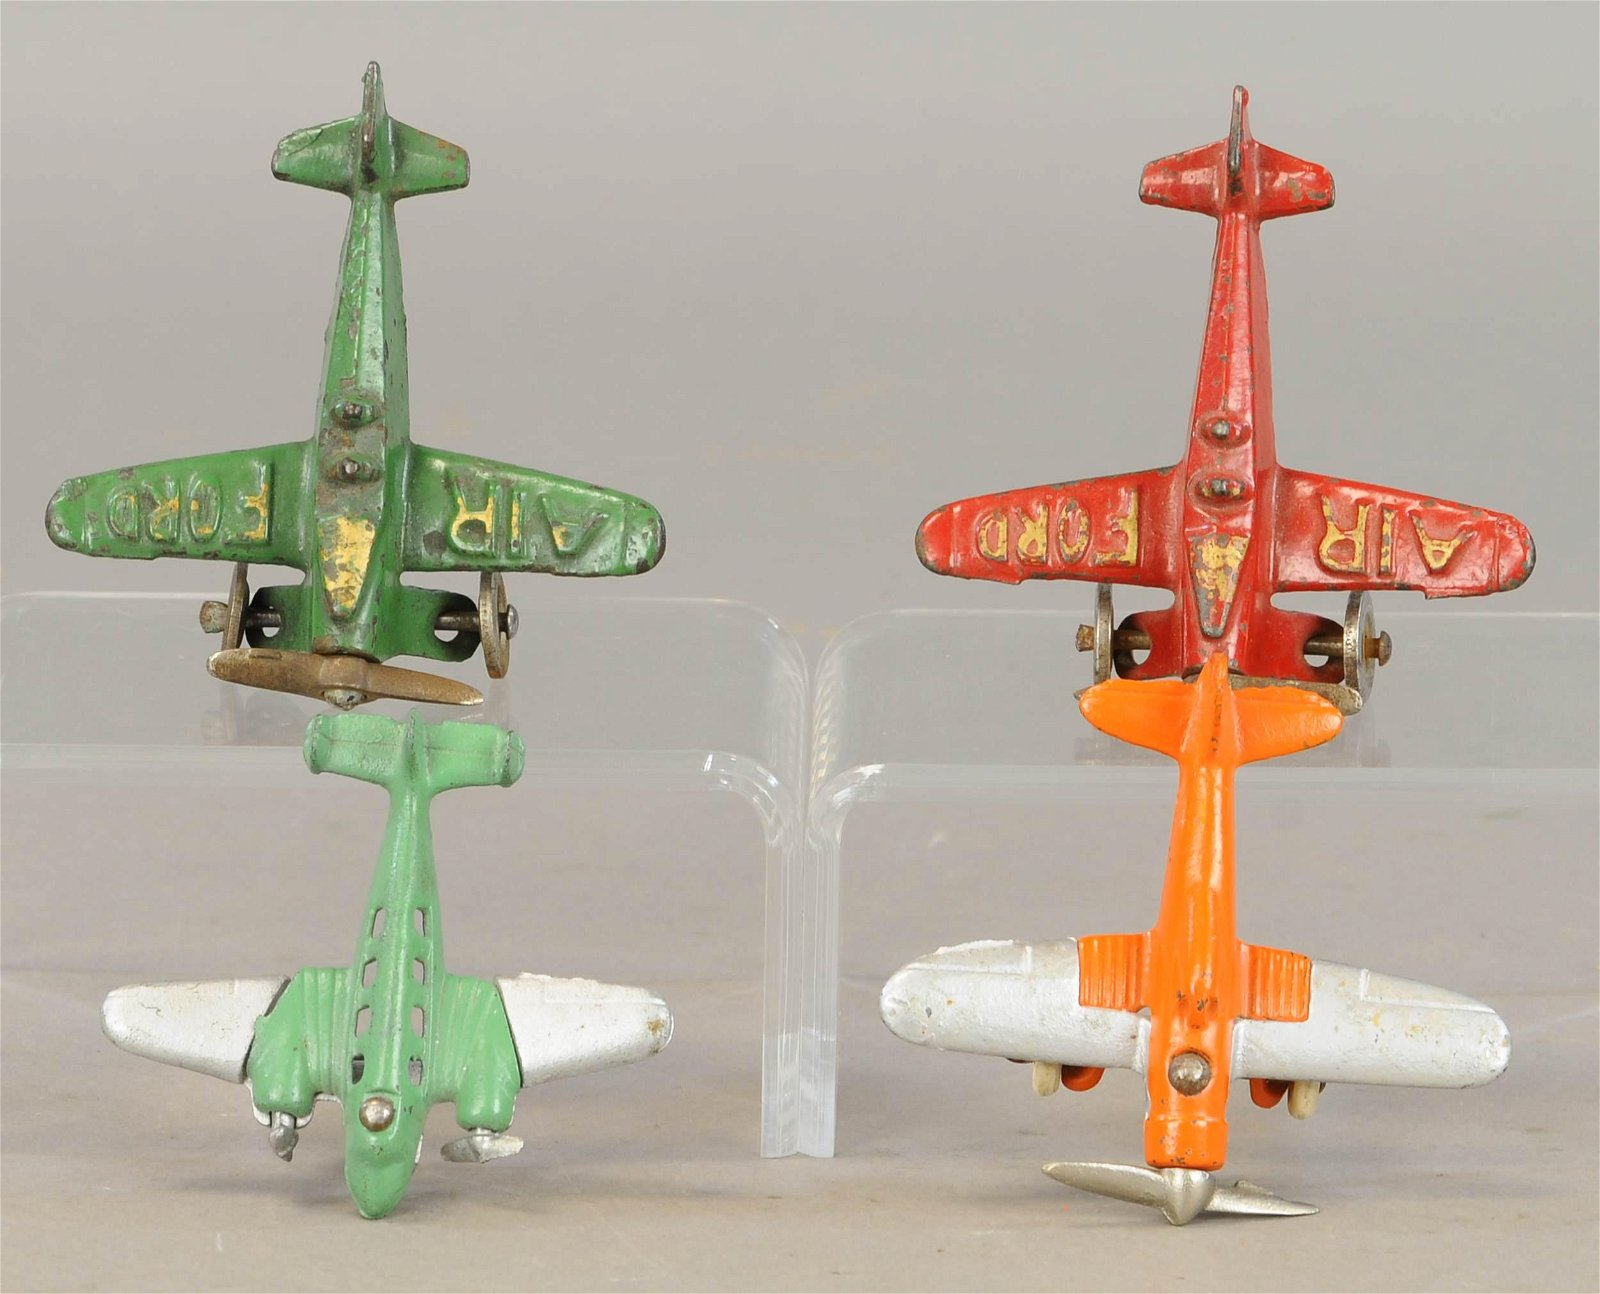 FOUR SMALL HUBLEY AIRPLANES